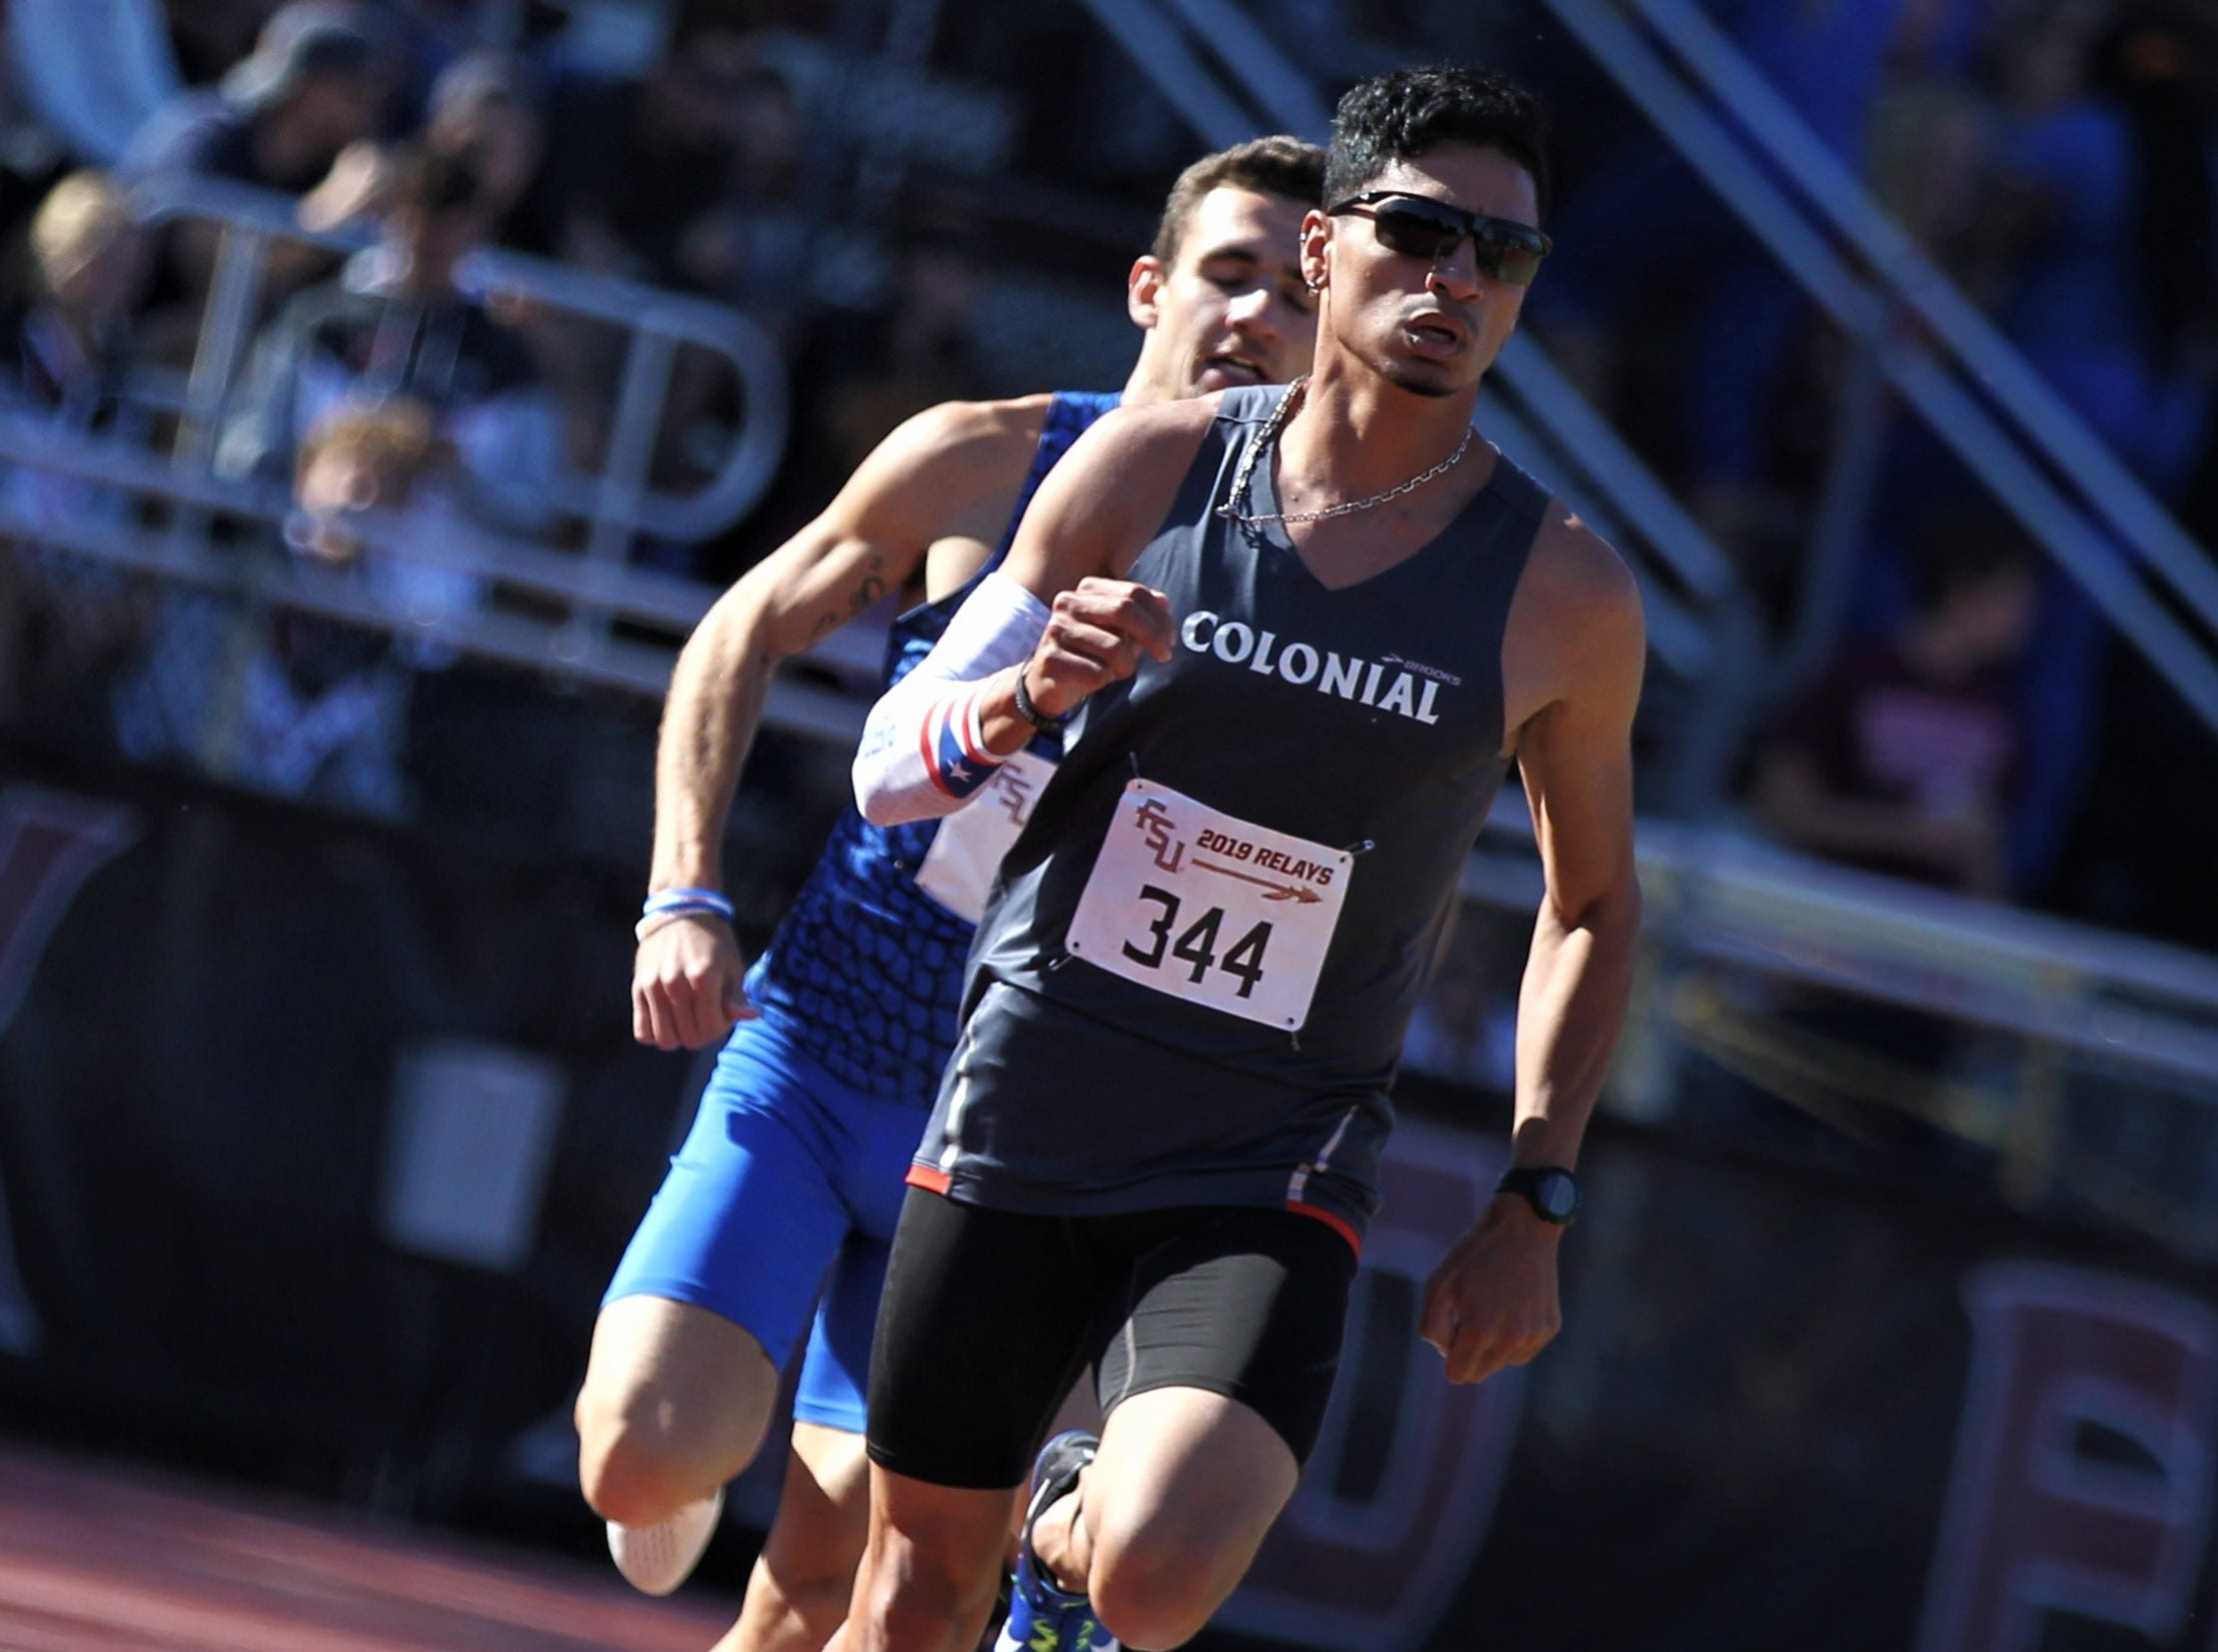 Andres Arroyo leads the 1500-meter run during Friday's college portion of the FSU Relays at Mike Long Track on March 22, 2019.